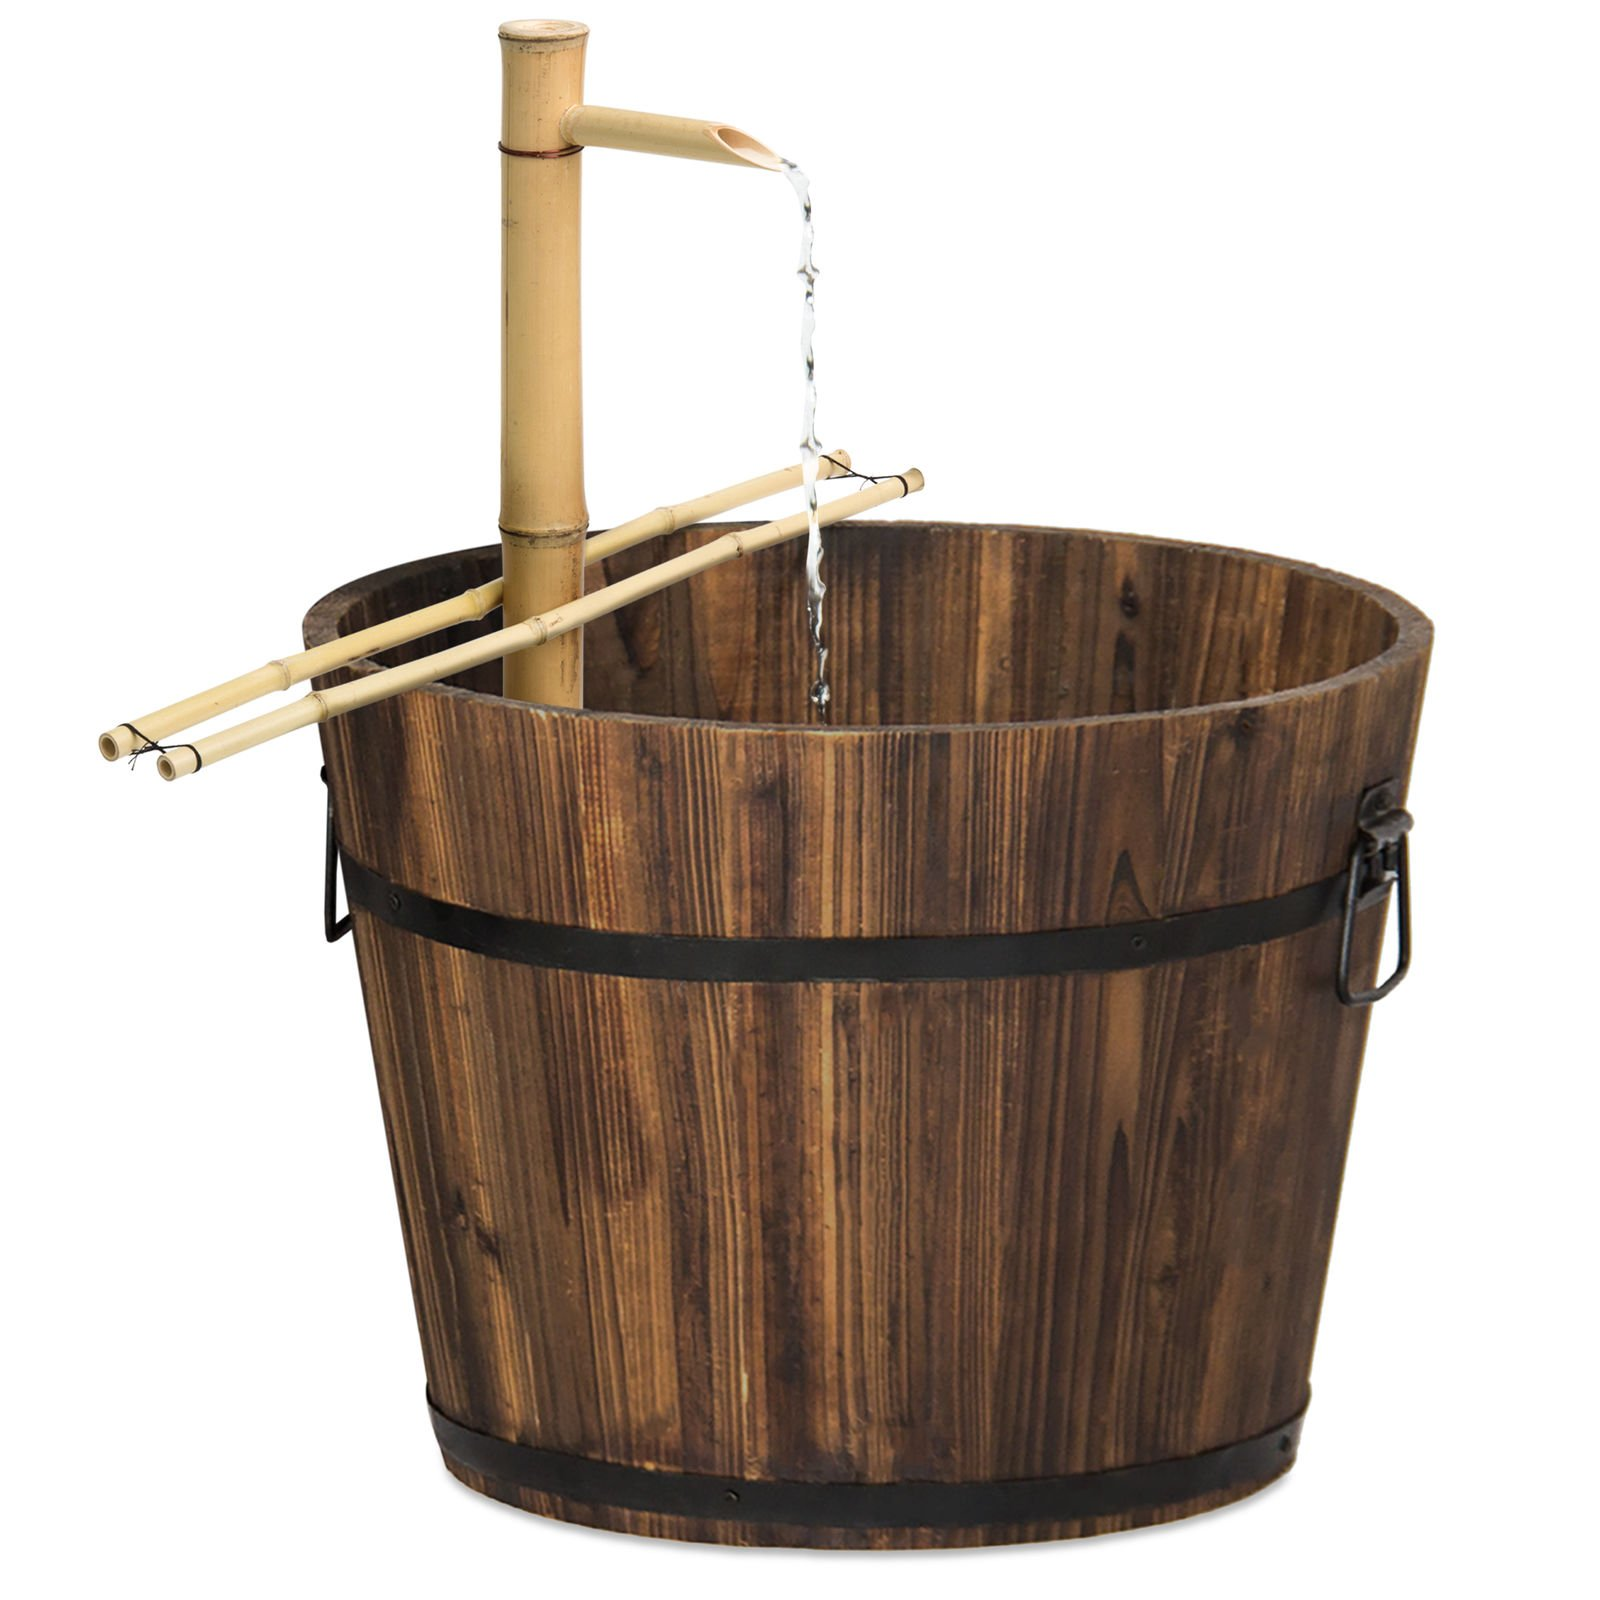 totoshop Outdoor Bamboo Water Fountain Garden Decor w/Pump by totoshop